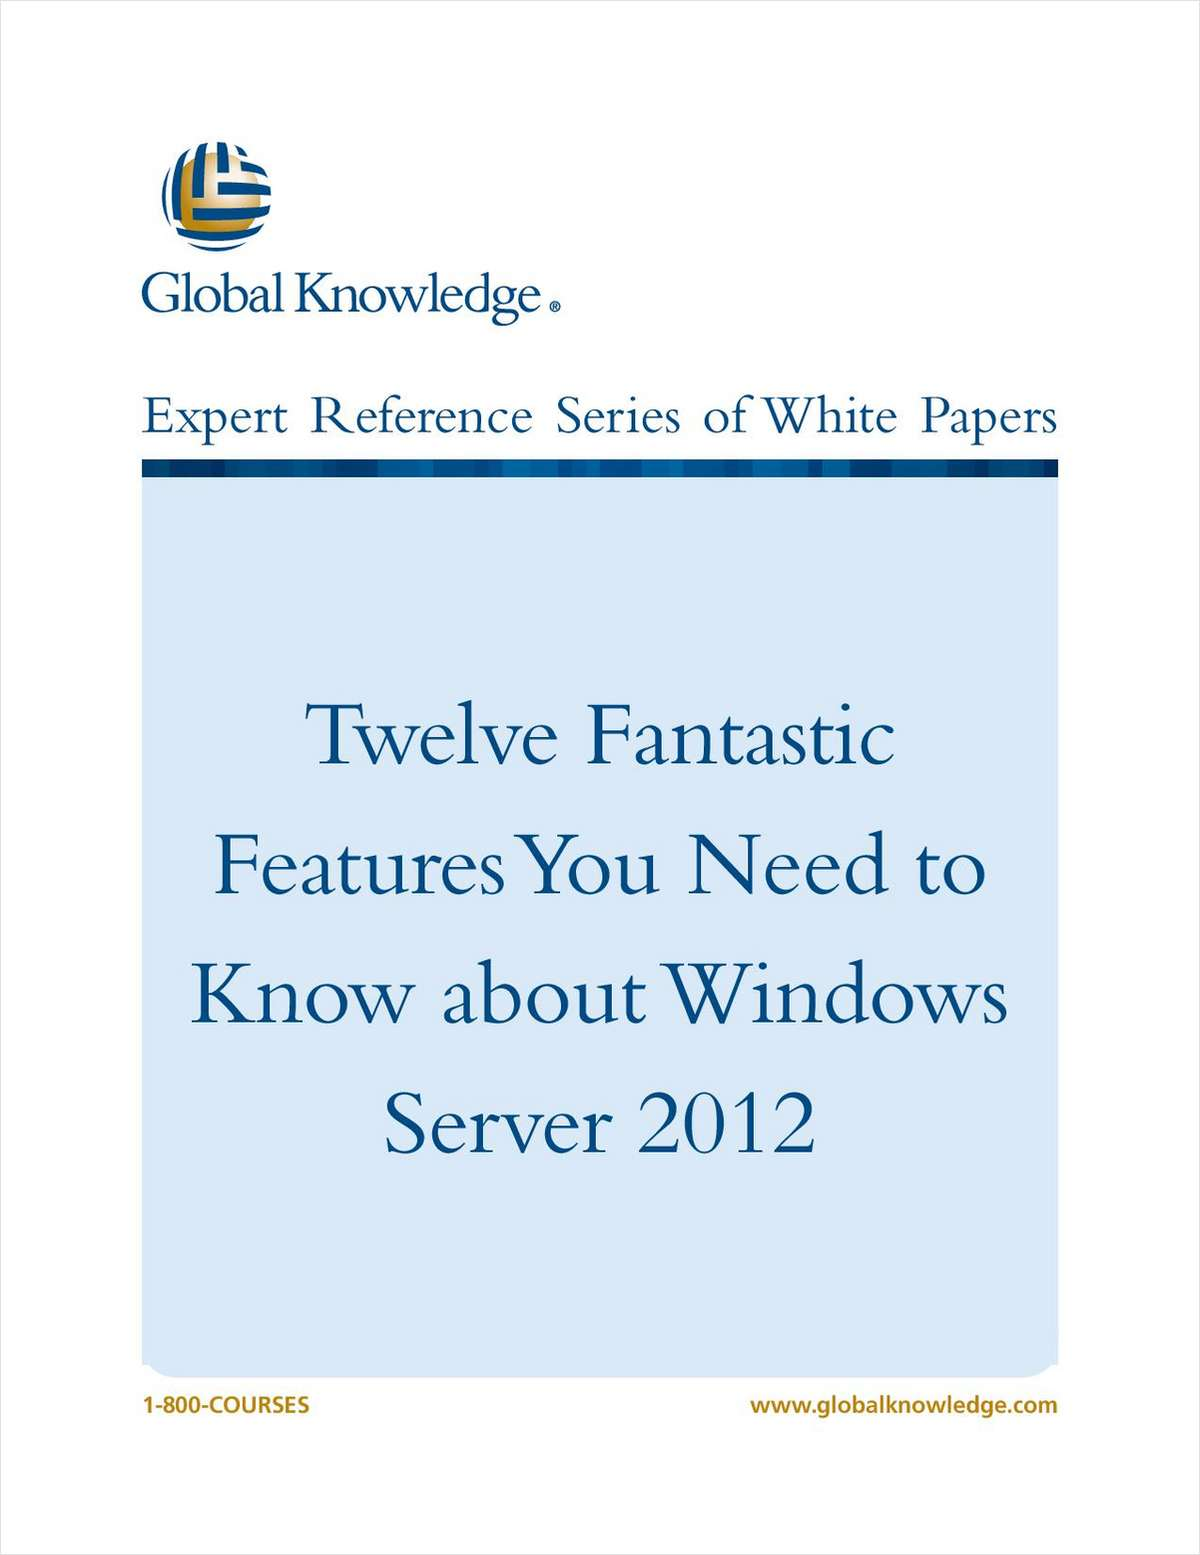 Twelve Fantastic Features You Need to Know about Windows Server 2012